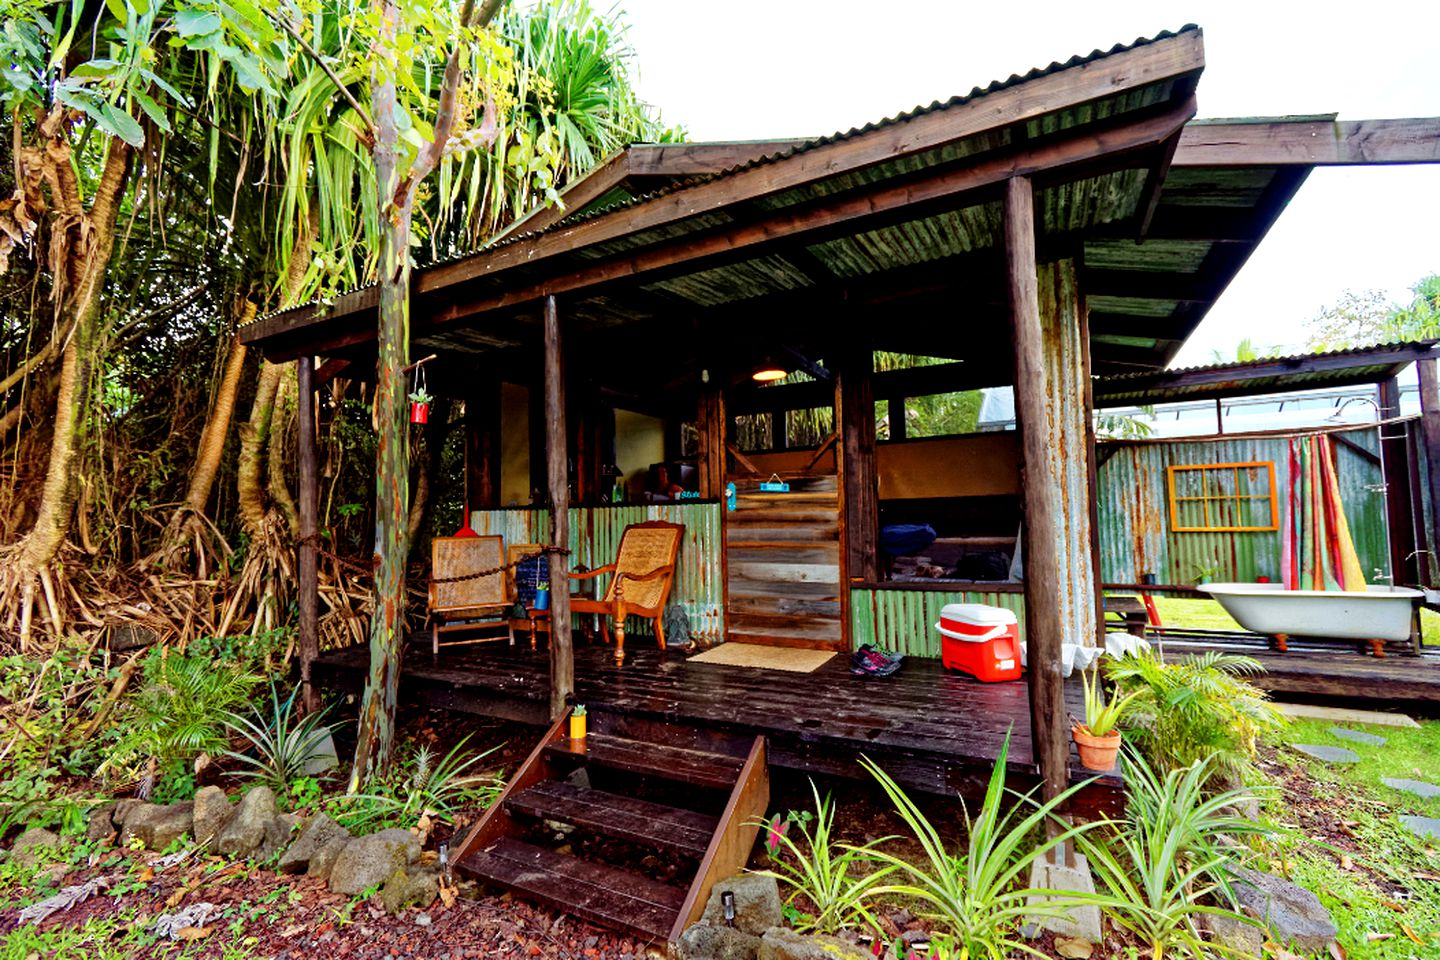 Wet wood in beautiful vacation rental in Pahoa, Hawaii! Package vacations will be a thing of the past